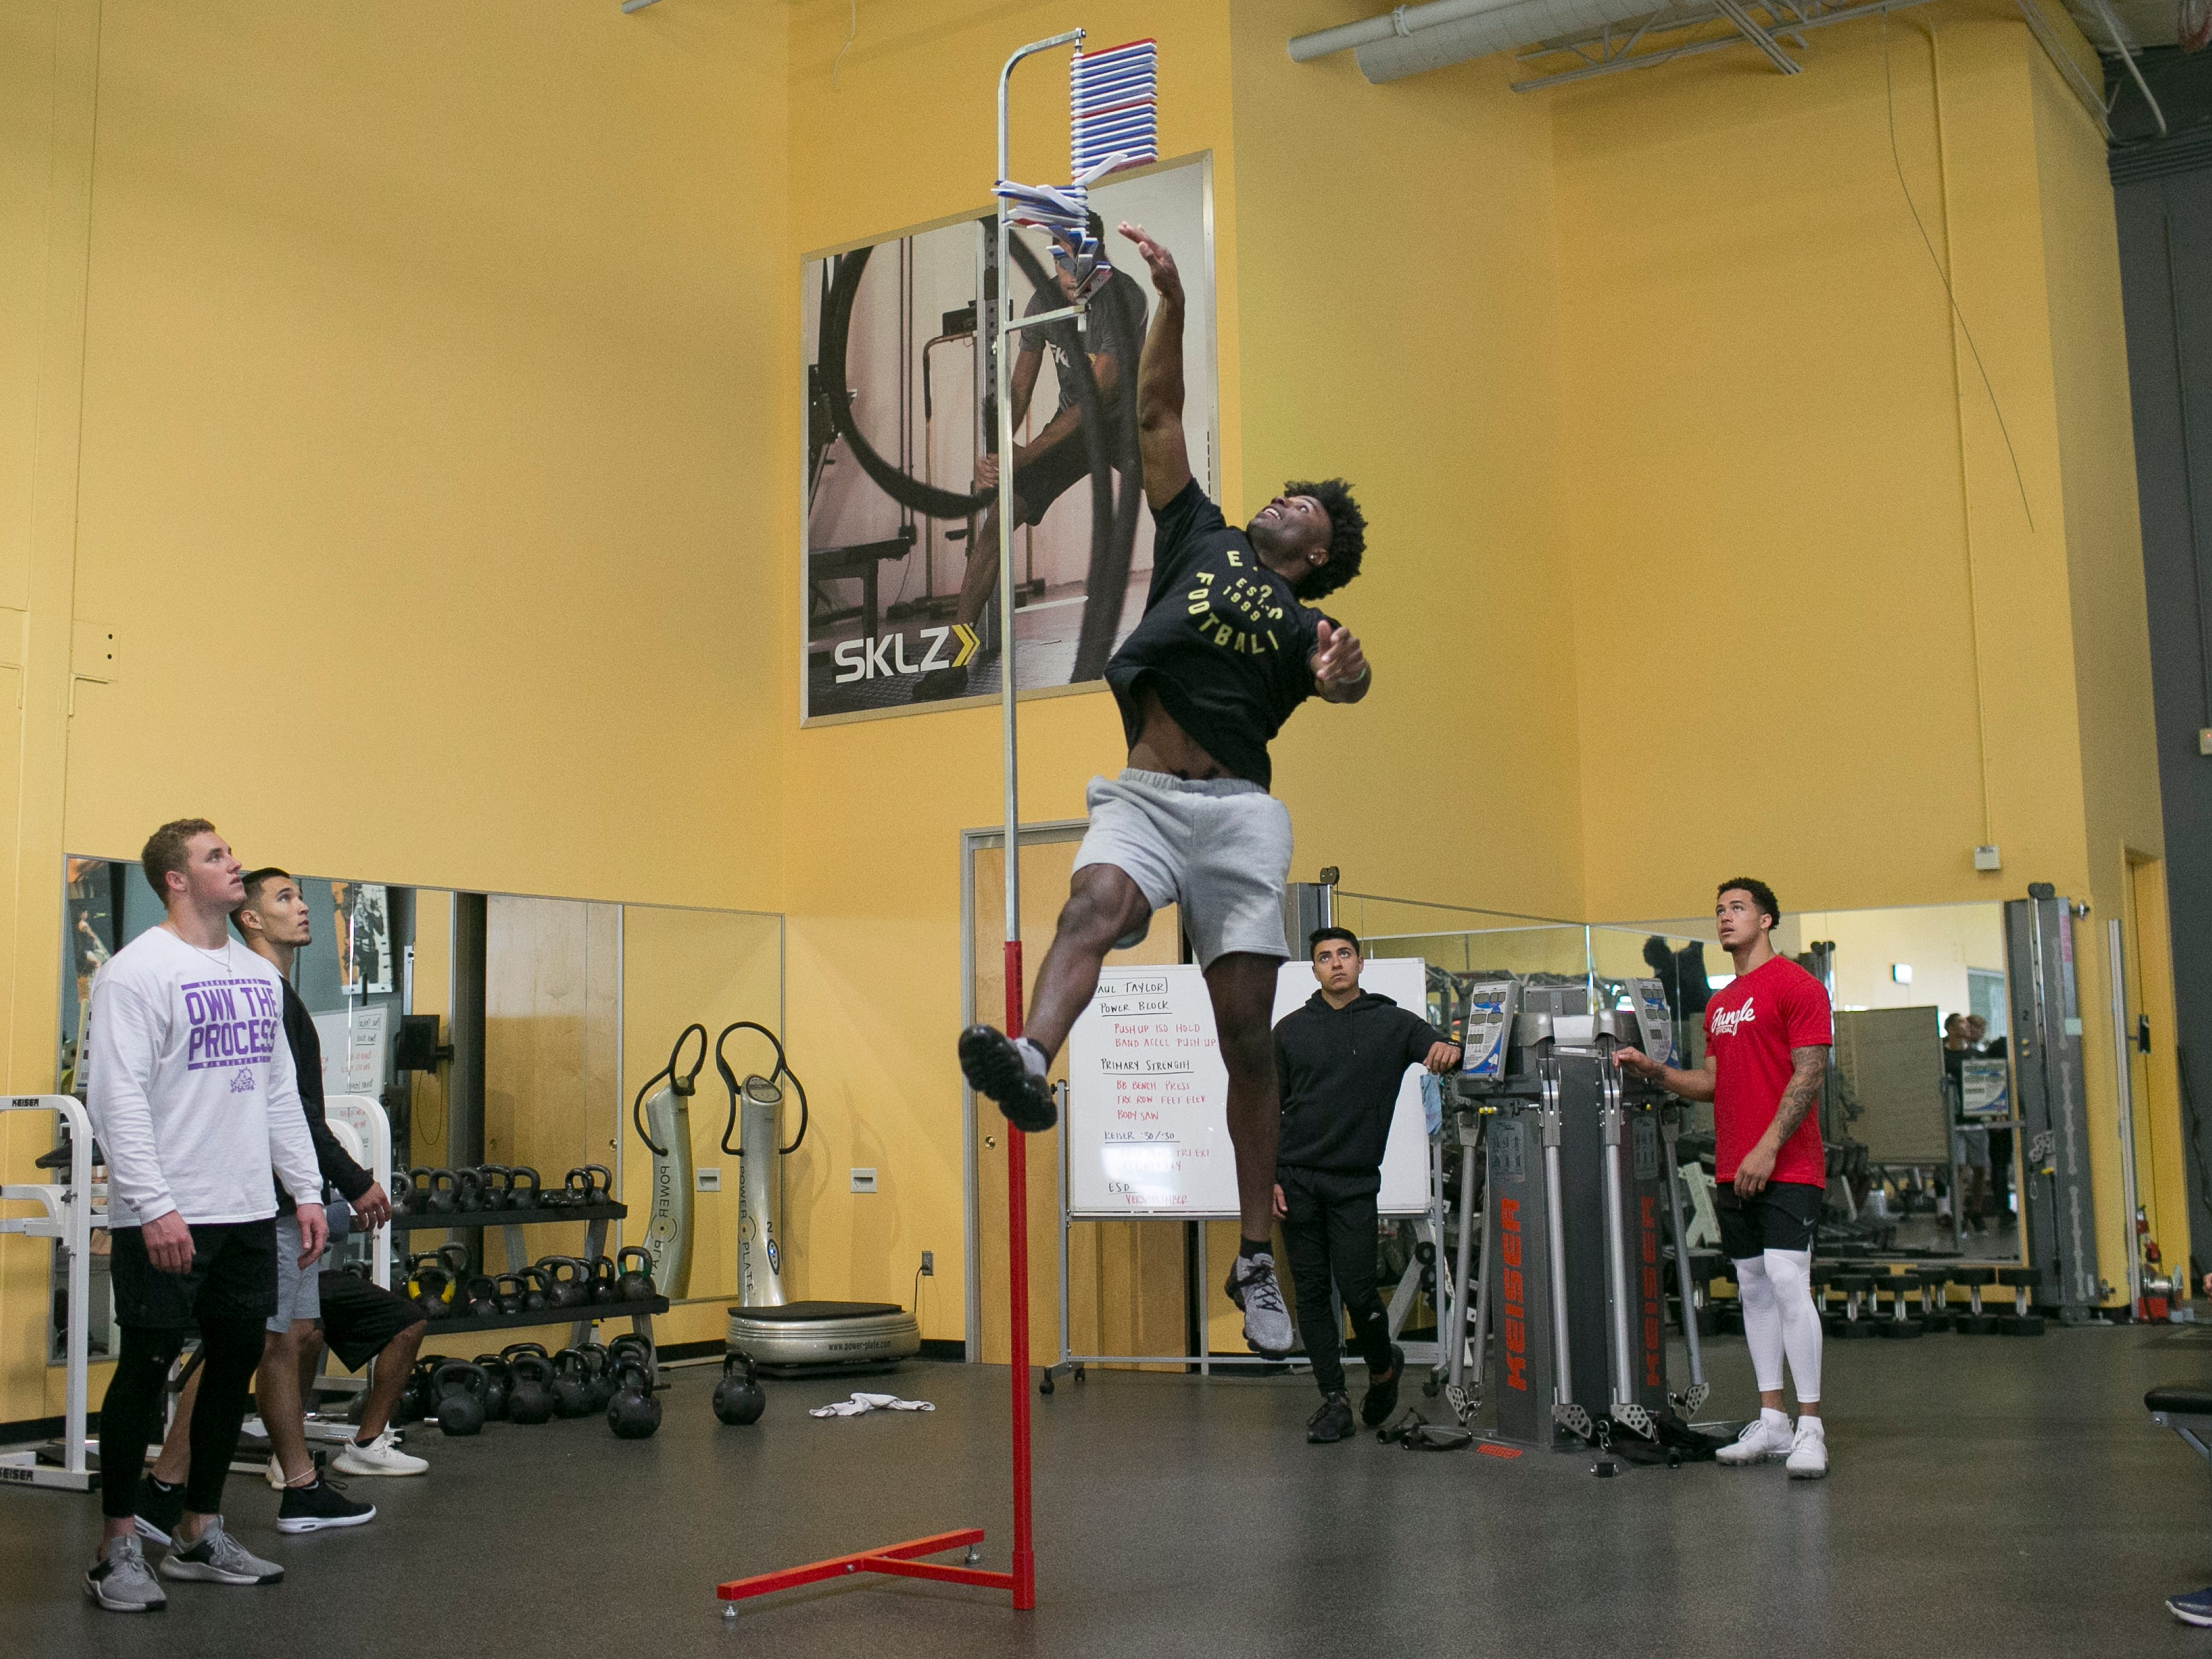 Joejuan Williams (center), a former defensive back for the Vanderbilt Commodores, prepares for the NFL combine at the EXOS training facility in Phoenix, Ariz., on Monday, February 18, 2019.